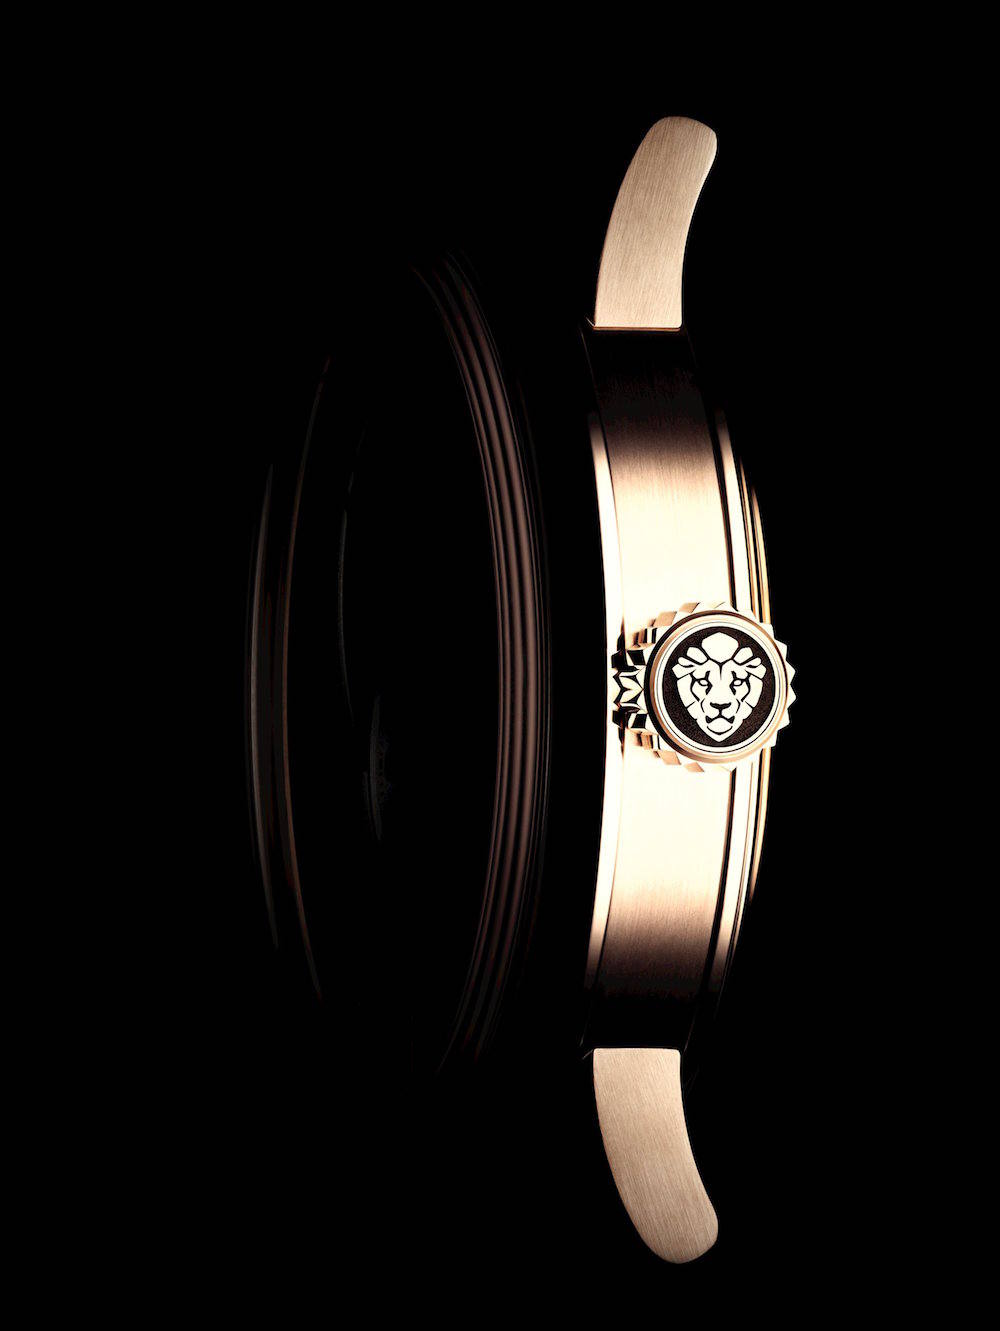 Monsieur de CHANEL watch profile 2